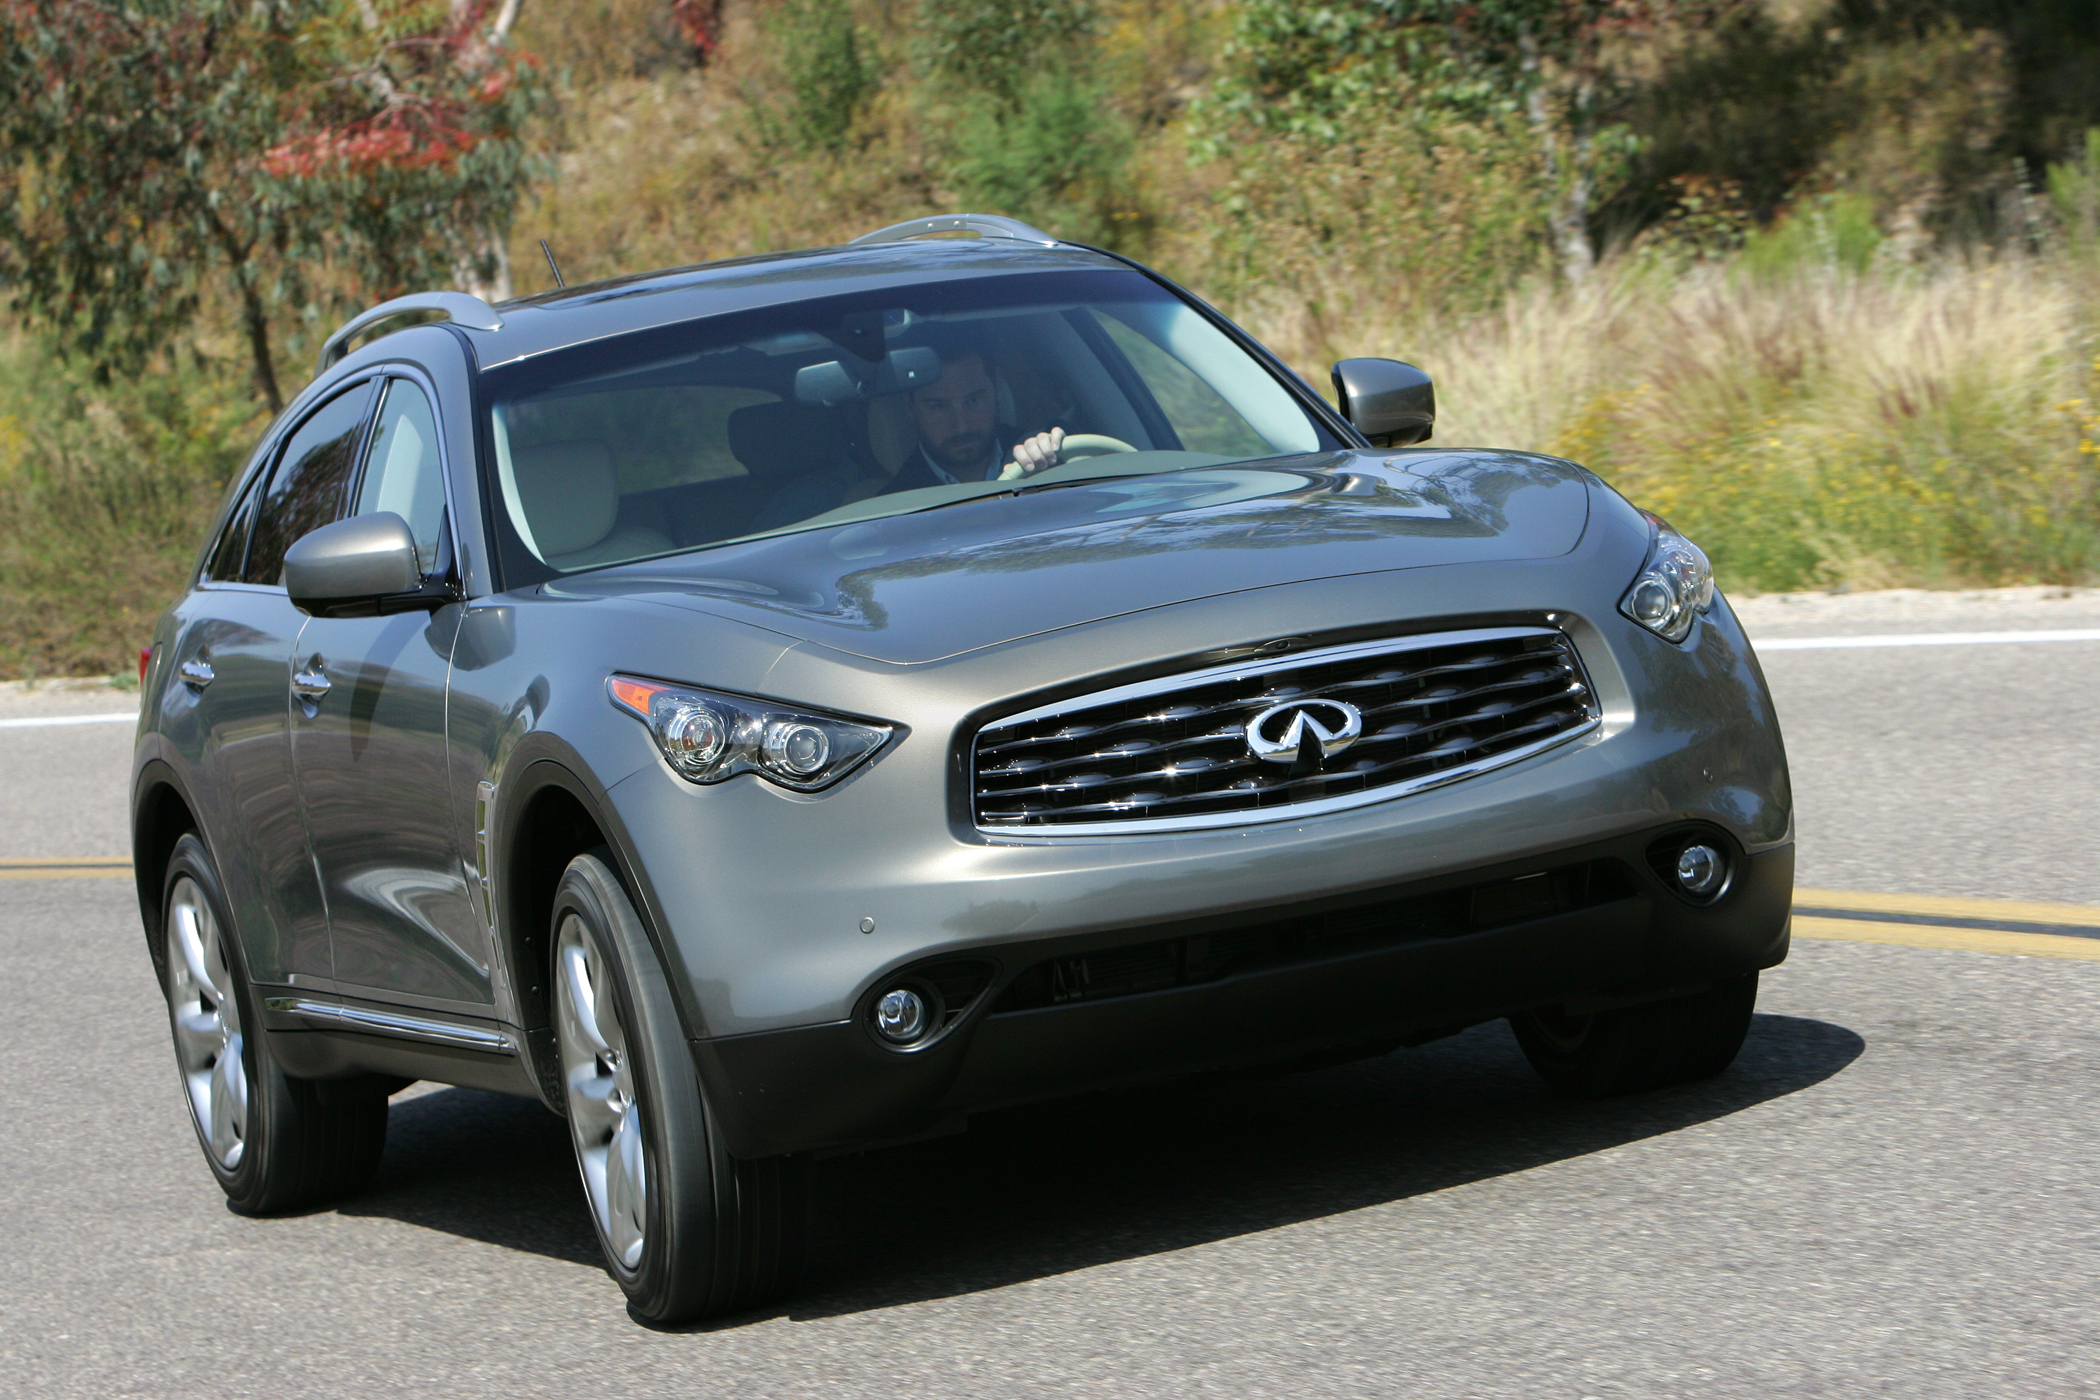 2009 infiniti fx50 a technical and performance statement new a camera watches the lane markings warning you if you stray from your lane if you dont correct your lapse it will selectively apply the brakes on the vanachro Image collections